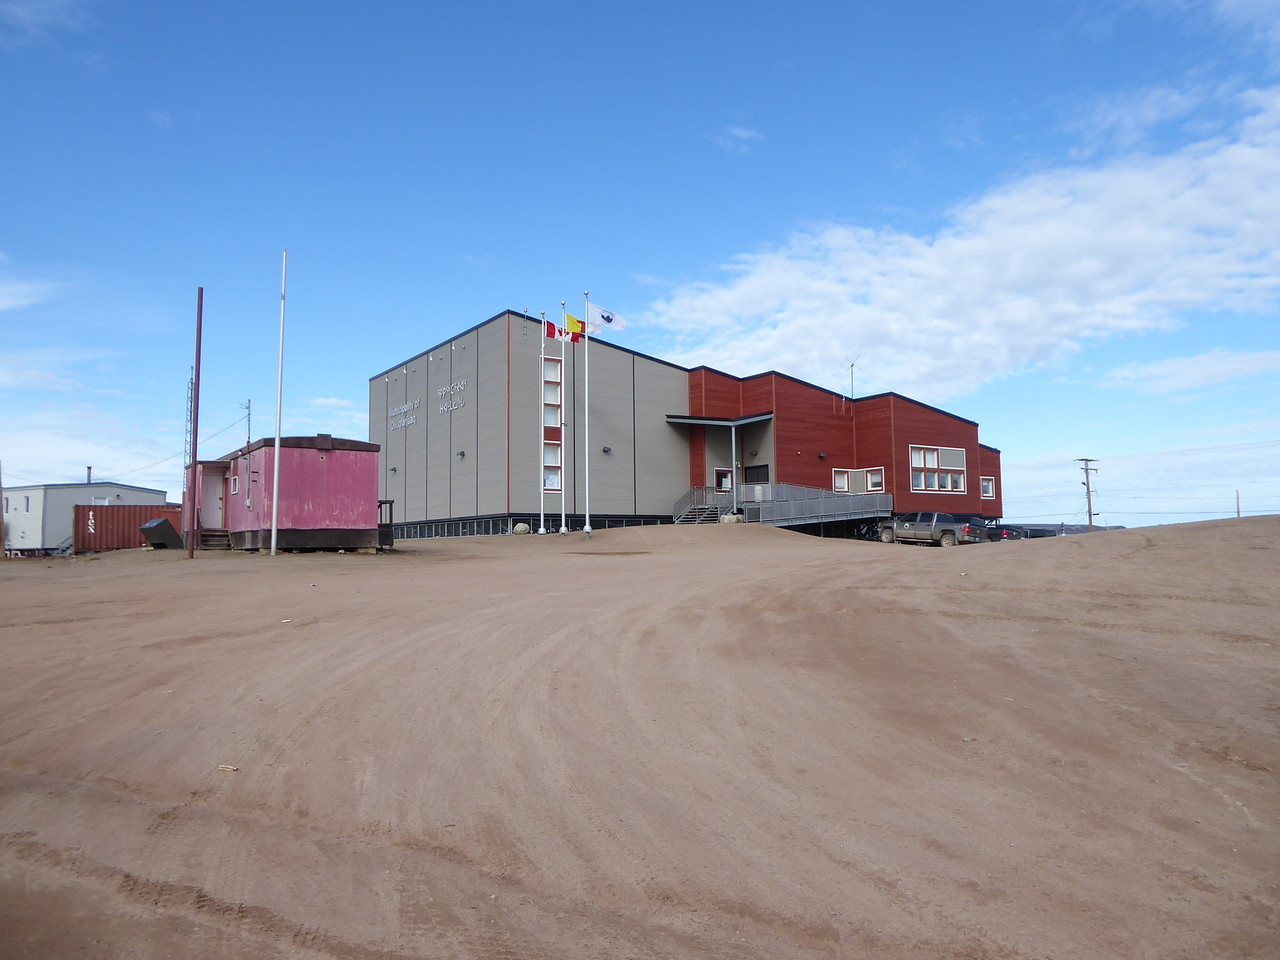 The new community hall in Qikiqtarjuaq. Most buildings in Nunavut are built on stilts because they sit on permafrost, which if it thaws because of the building will cause undesired settling.